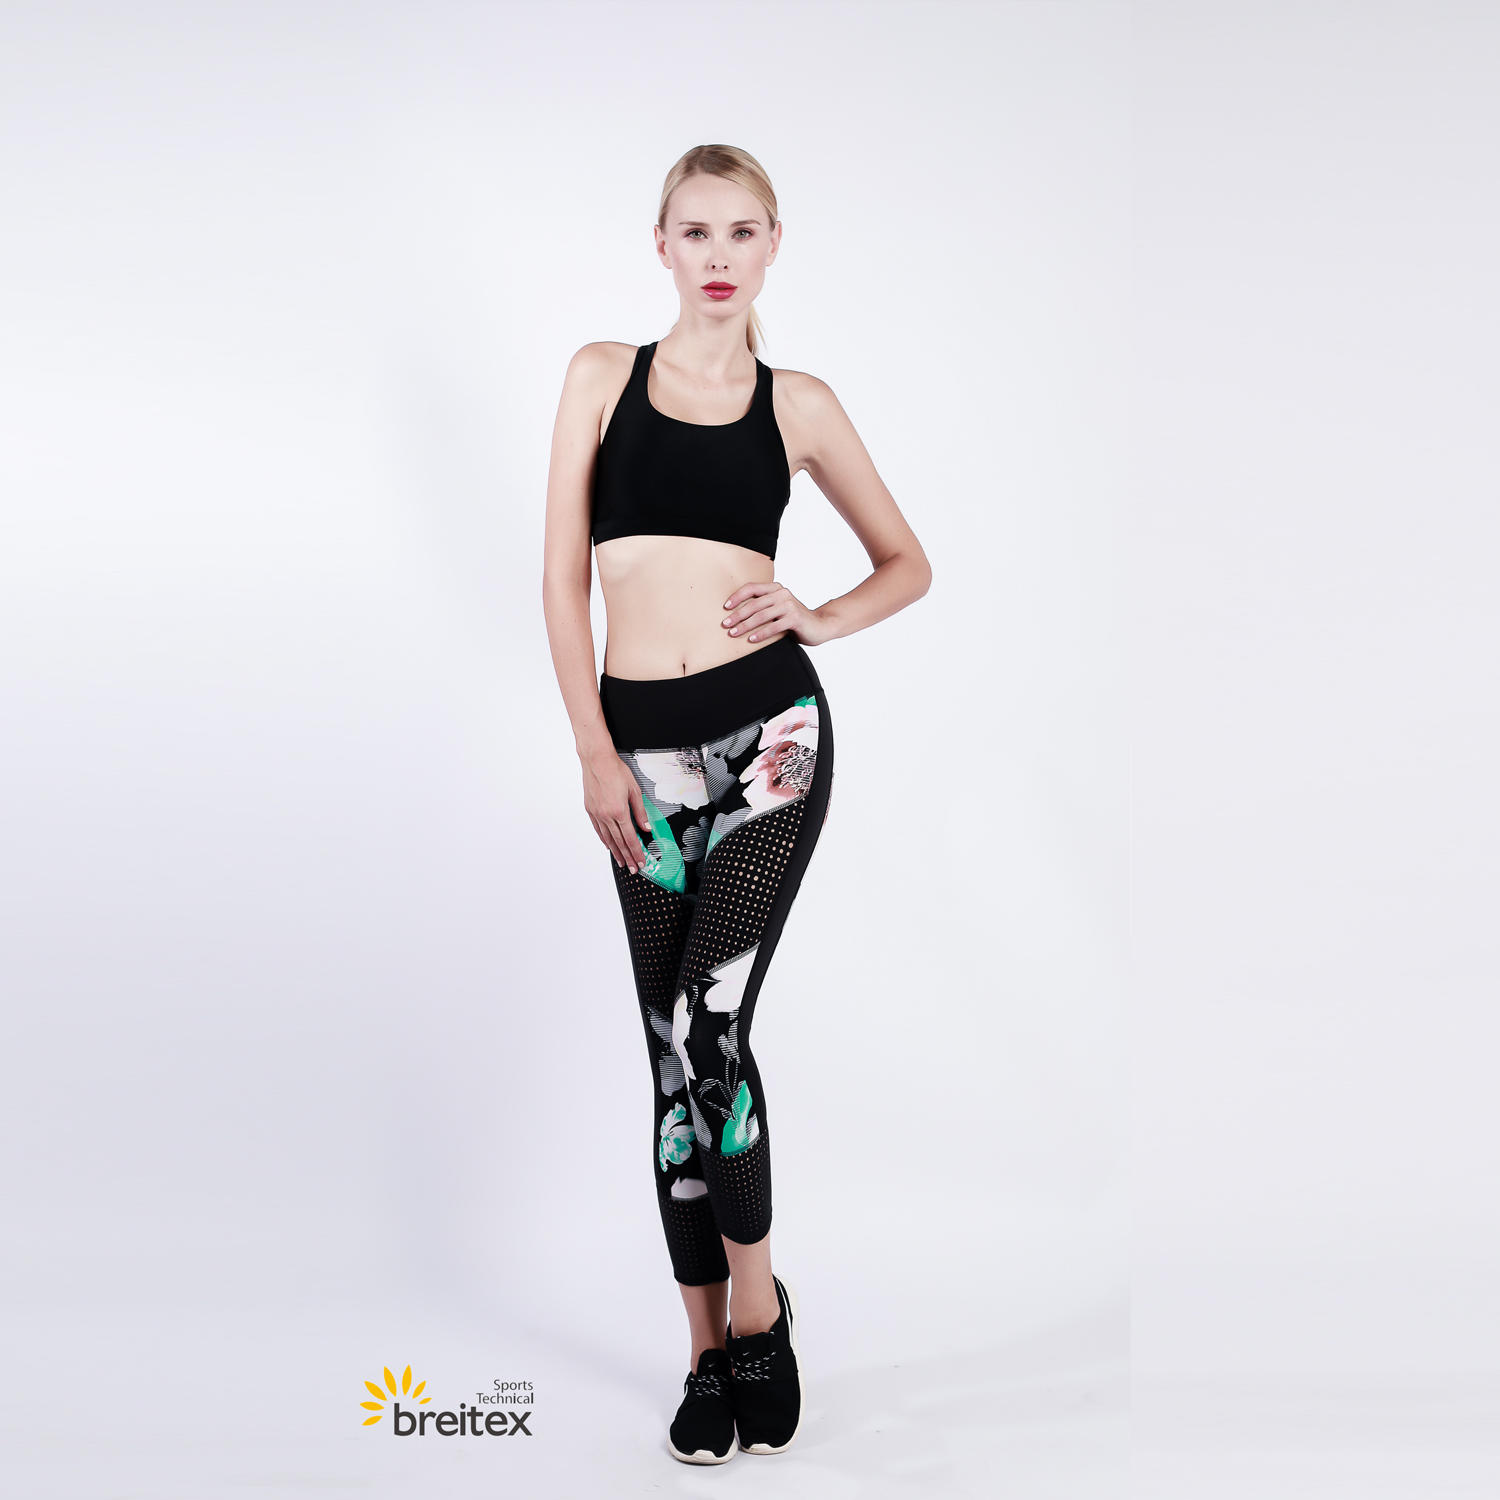 ladies' yoga wear, knit bra and leggings